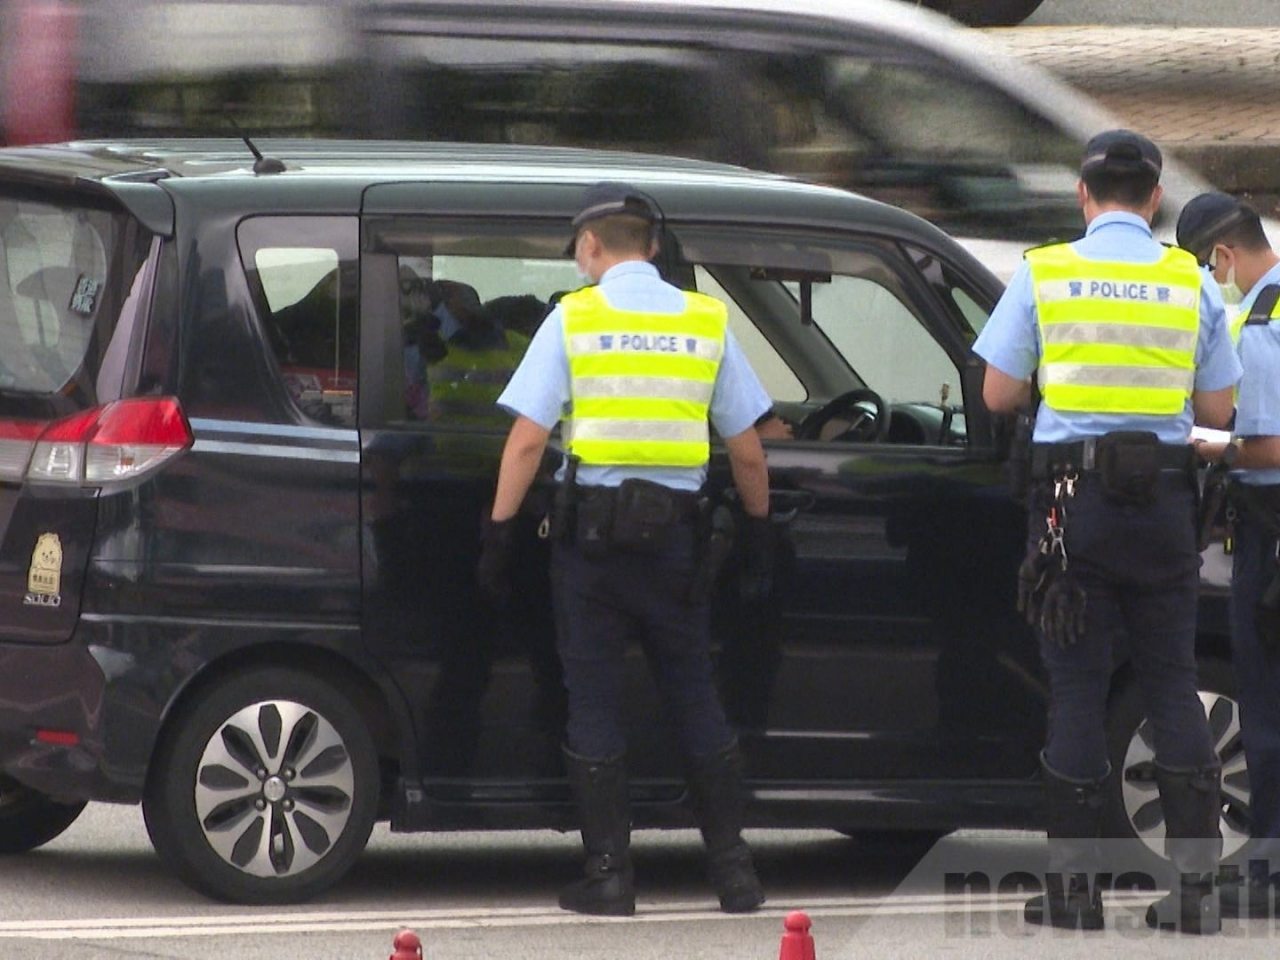 Police officers stop a vehicle at the Cross Harbour Tunnel in Hung Hom. Photo: RTHK